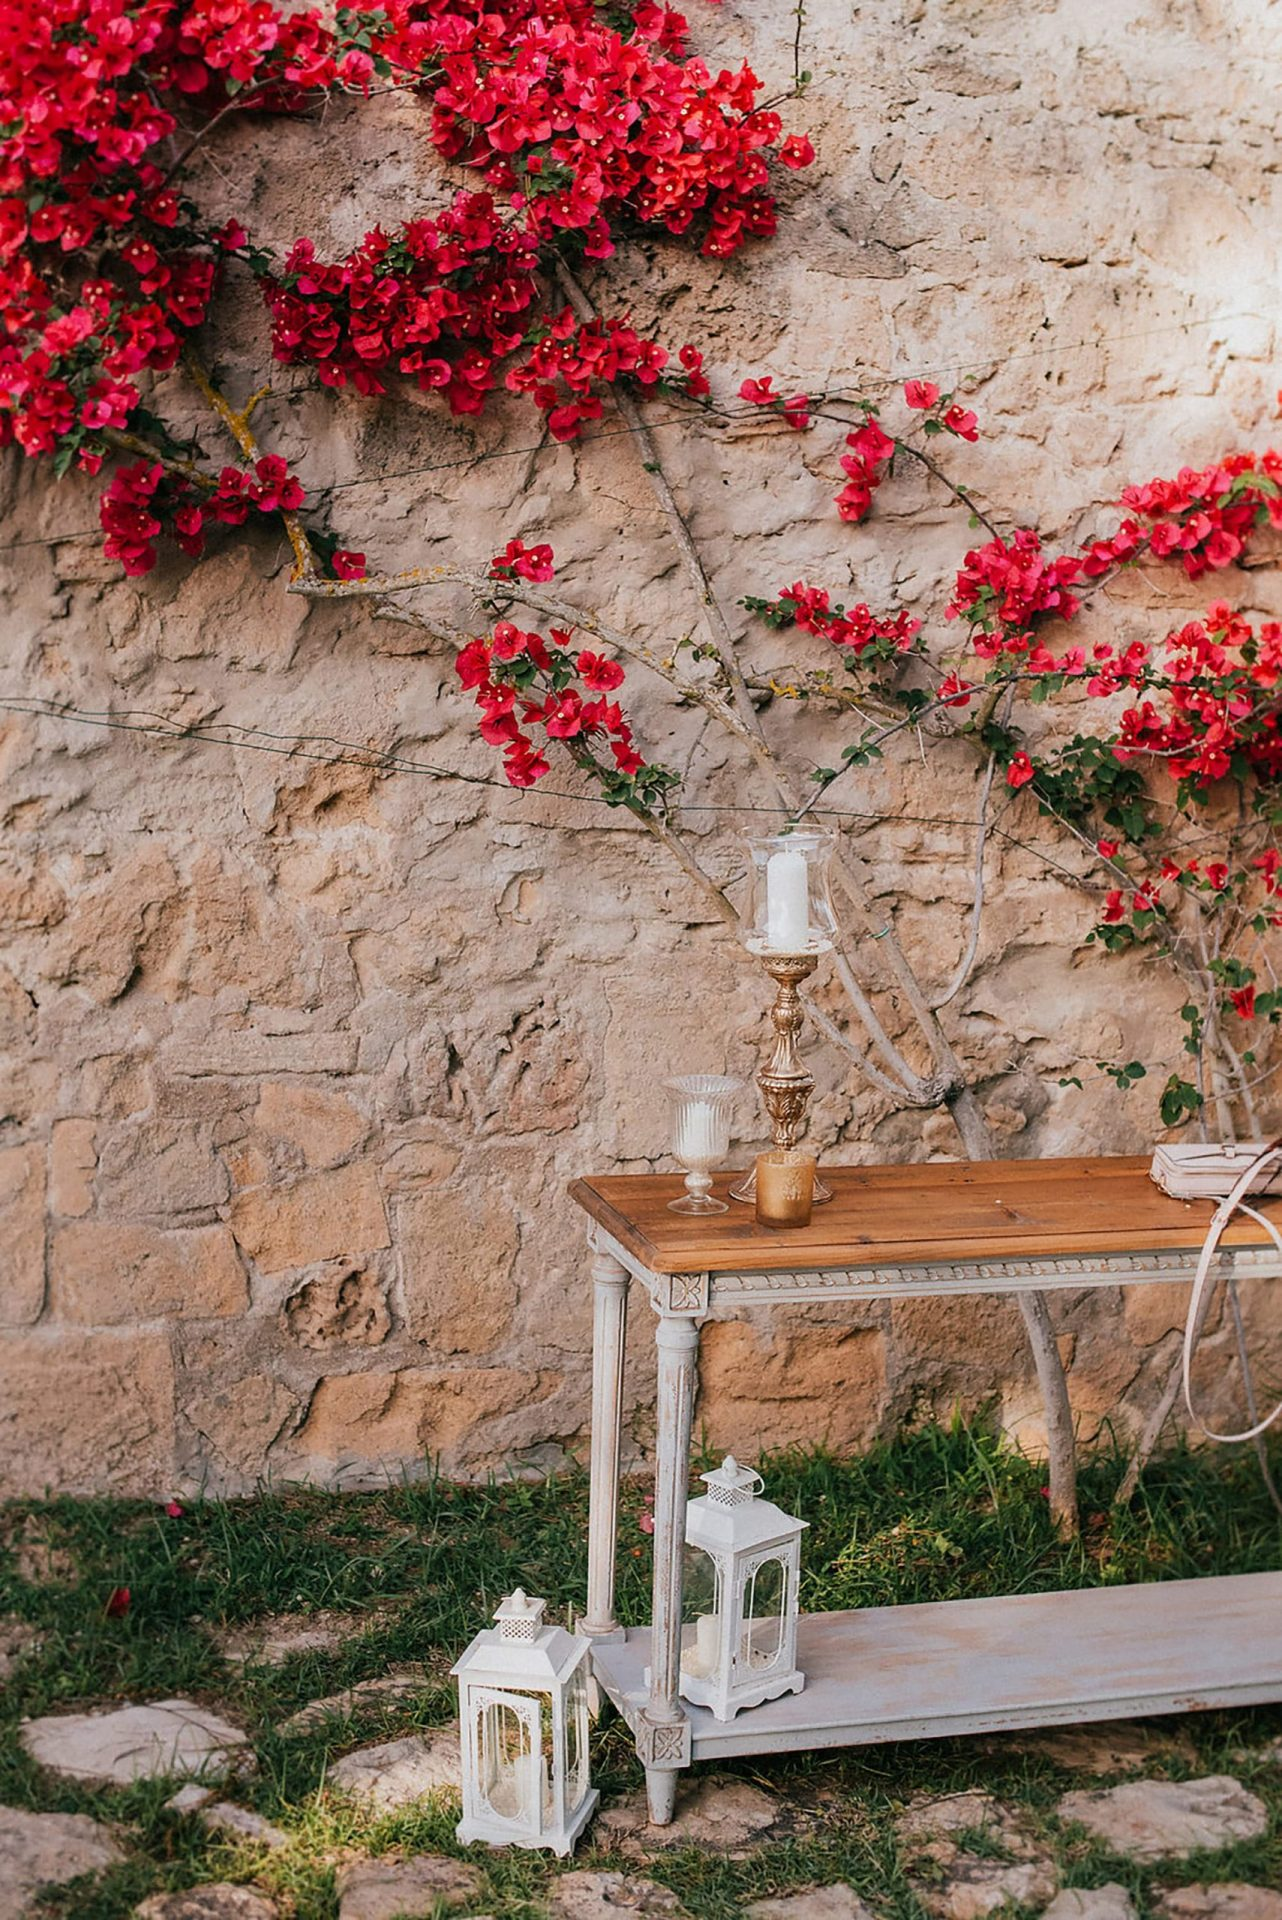 Ilaria e Giovanni, al fresco wedding reception in country style villa